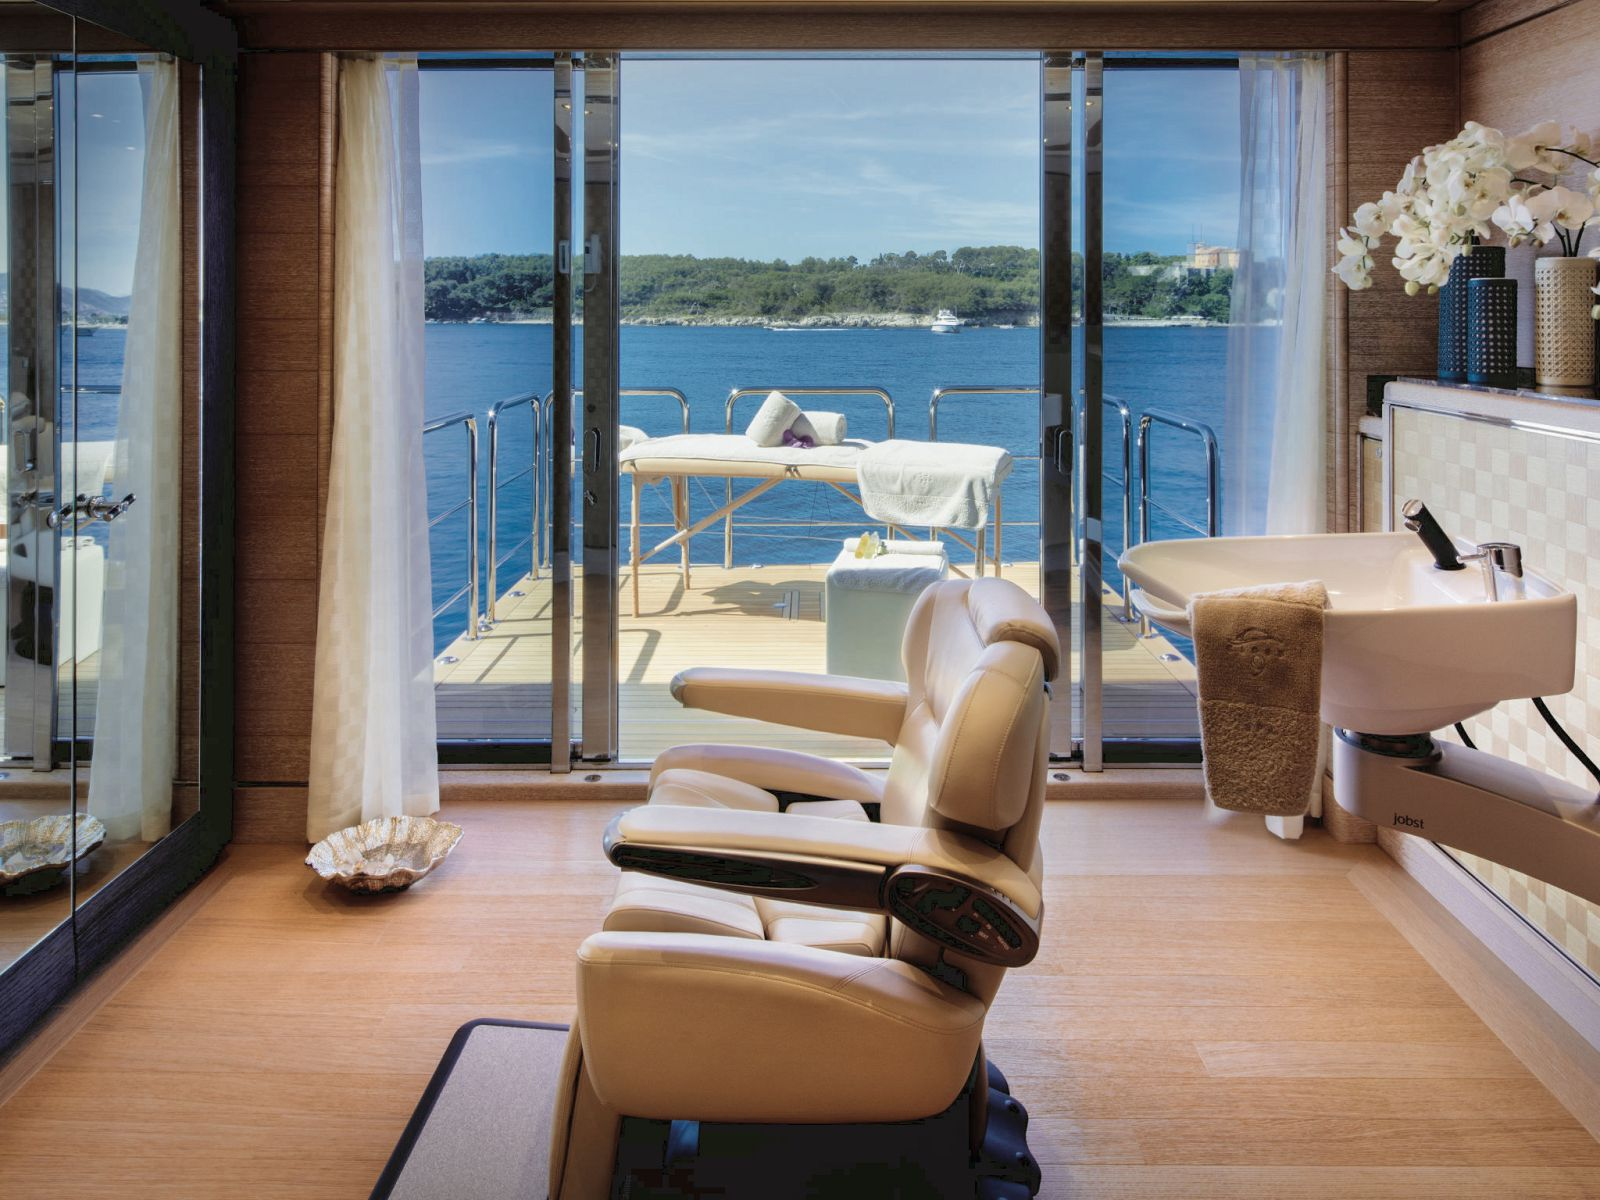 Inetrior spa chair and sink with massage table on the balcony overlooking the water. >